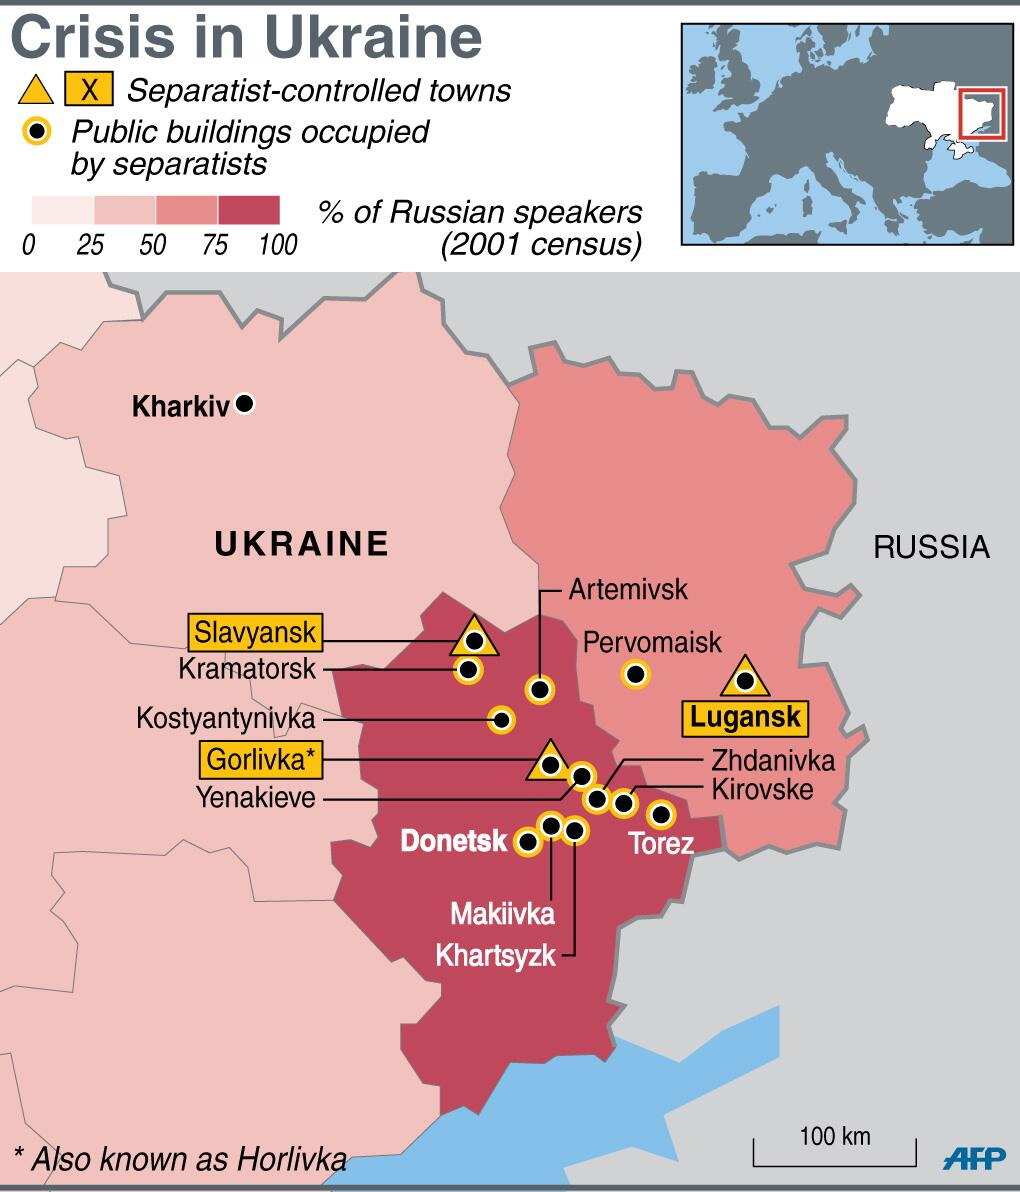 East Ukraine - These Are The Cities Controlled By Separatists